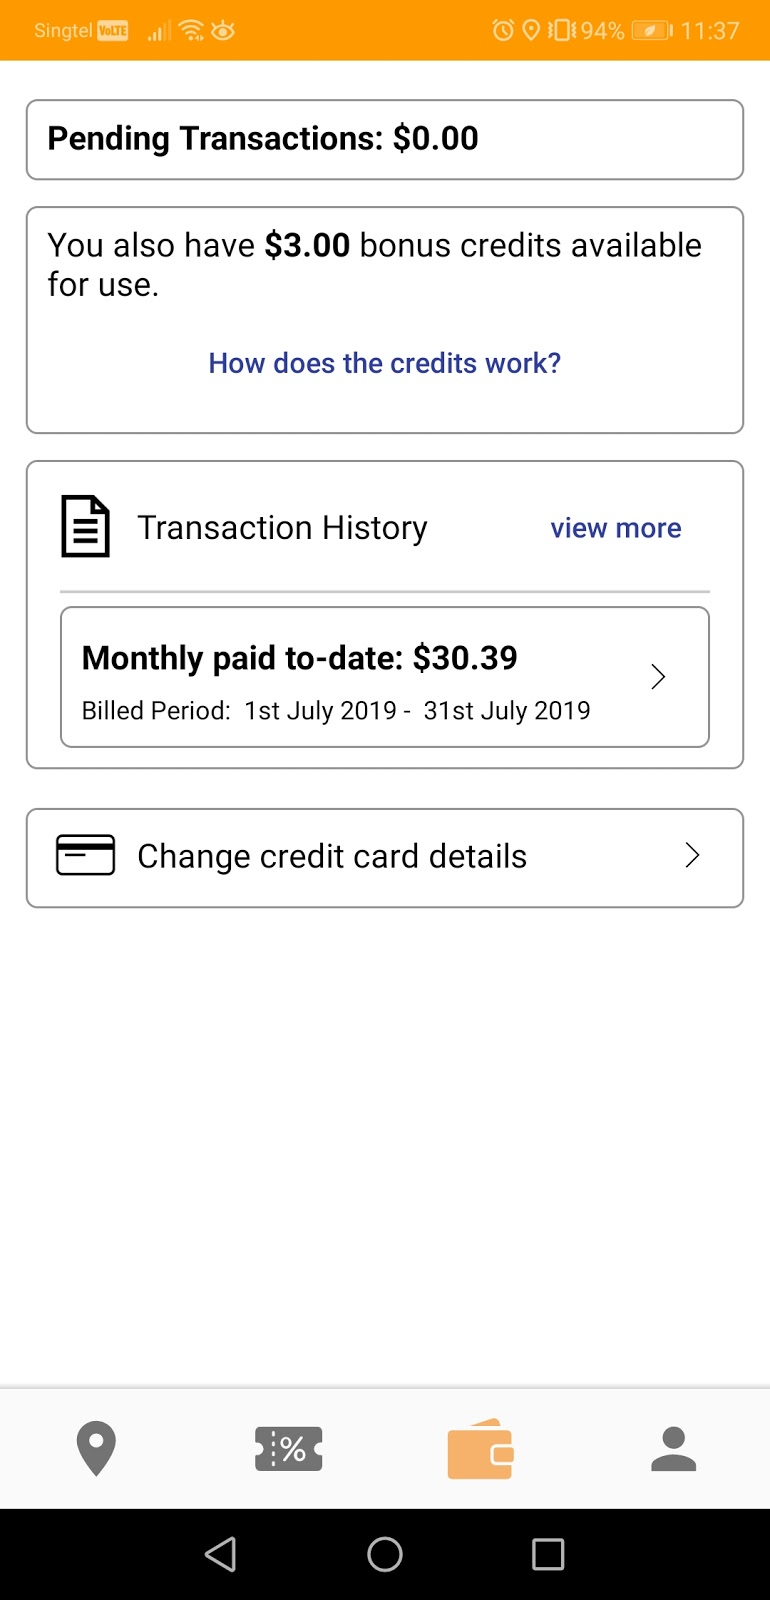 Payment - We've simplified the UI so that it takes just one glance to understand how much you have spent on transport this month and what the upcoming payment is. All your travels on Zipster are now postpaid with your linked credit card, that means no more hassle topping up in your Zipster account.